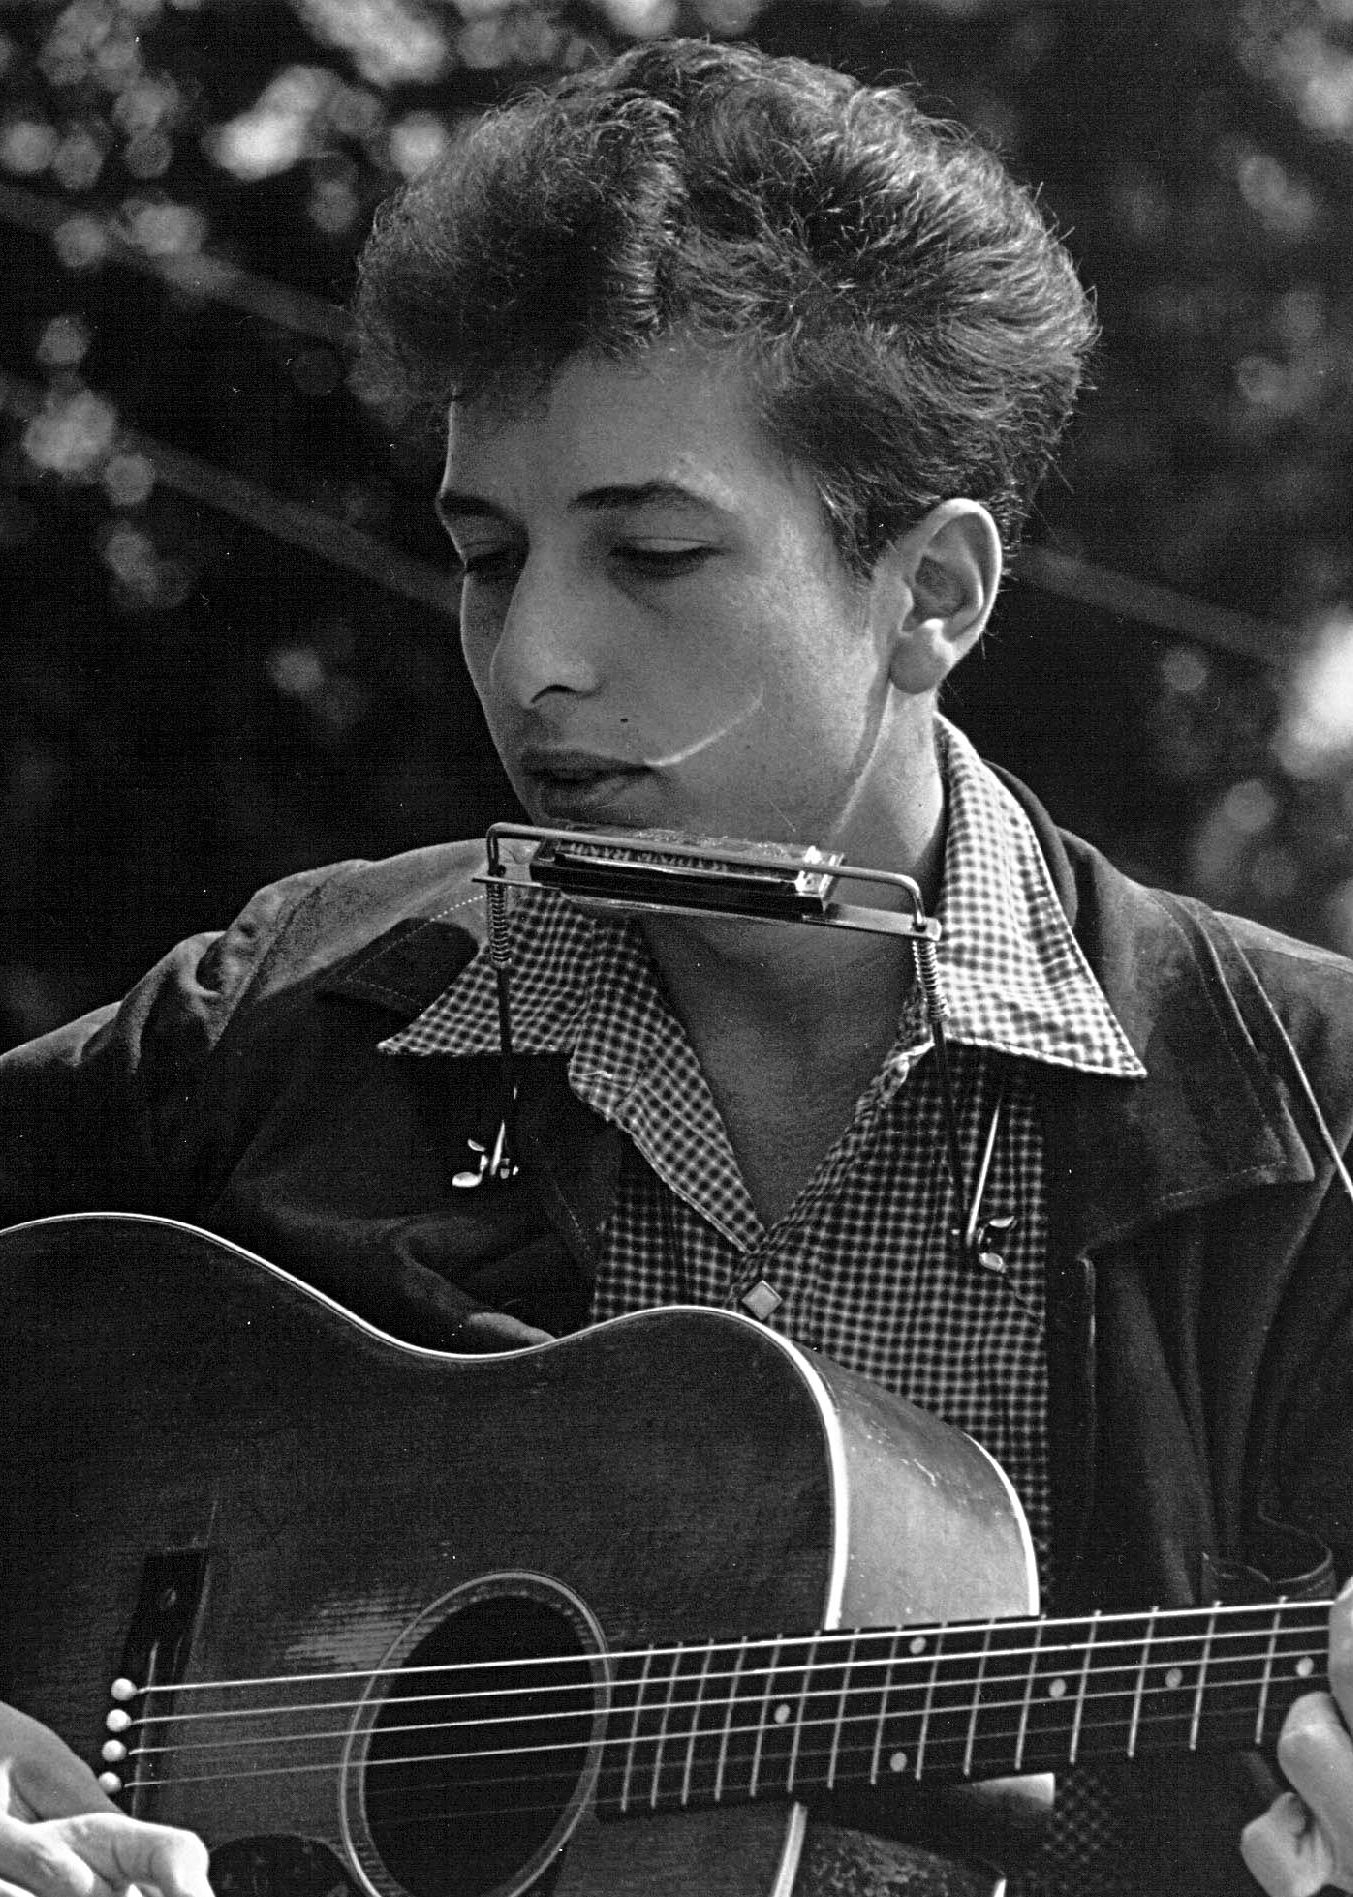 biography of the literary works of dylan Bob dylan's nobel prize win and the ensuing debate as to whether a musician should have been considered is a striking comment on the seemingly glib question of what literature actually is.